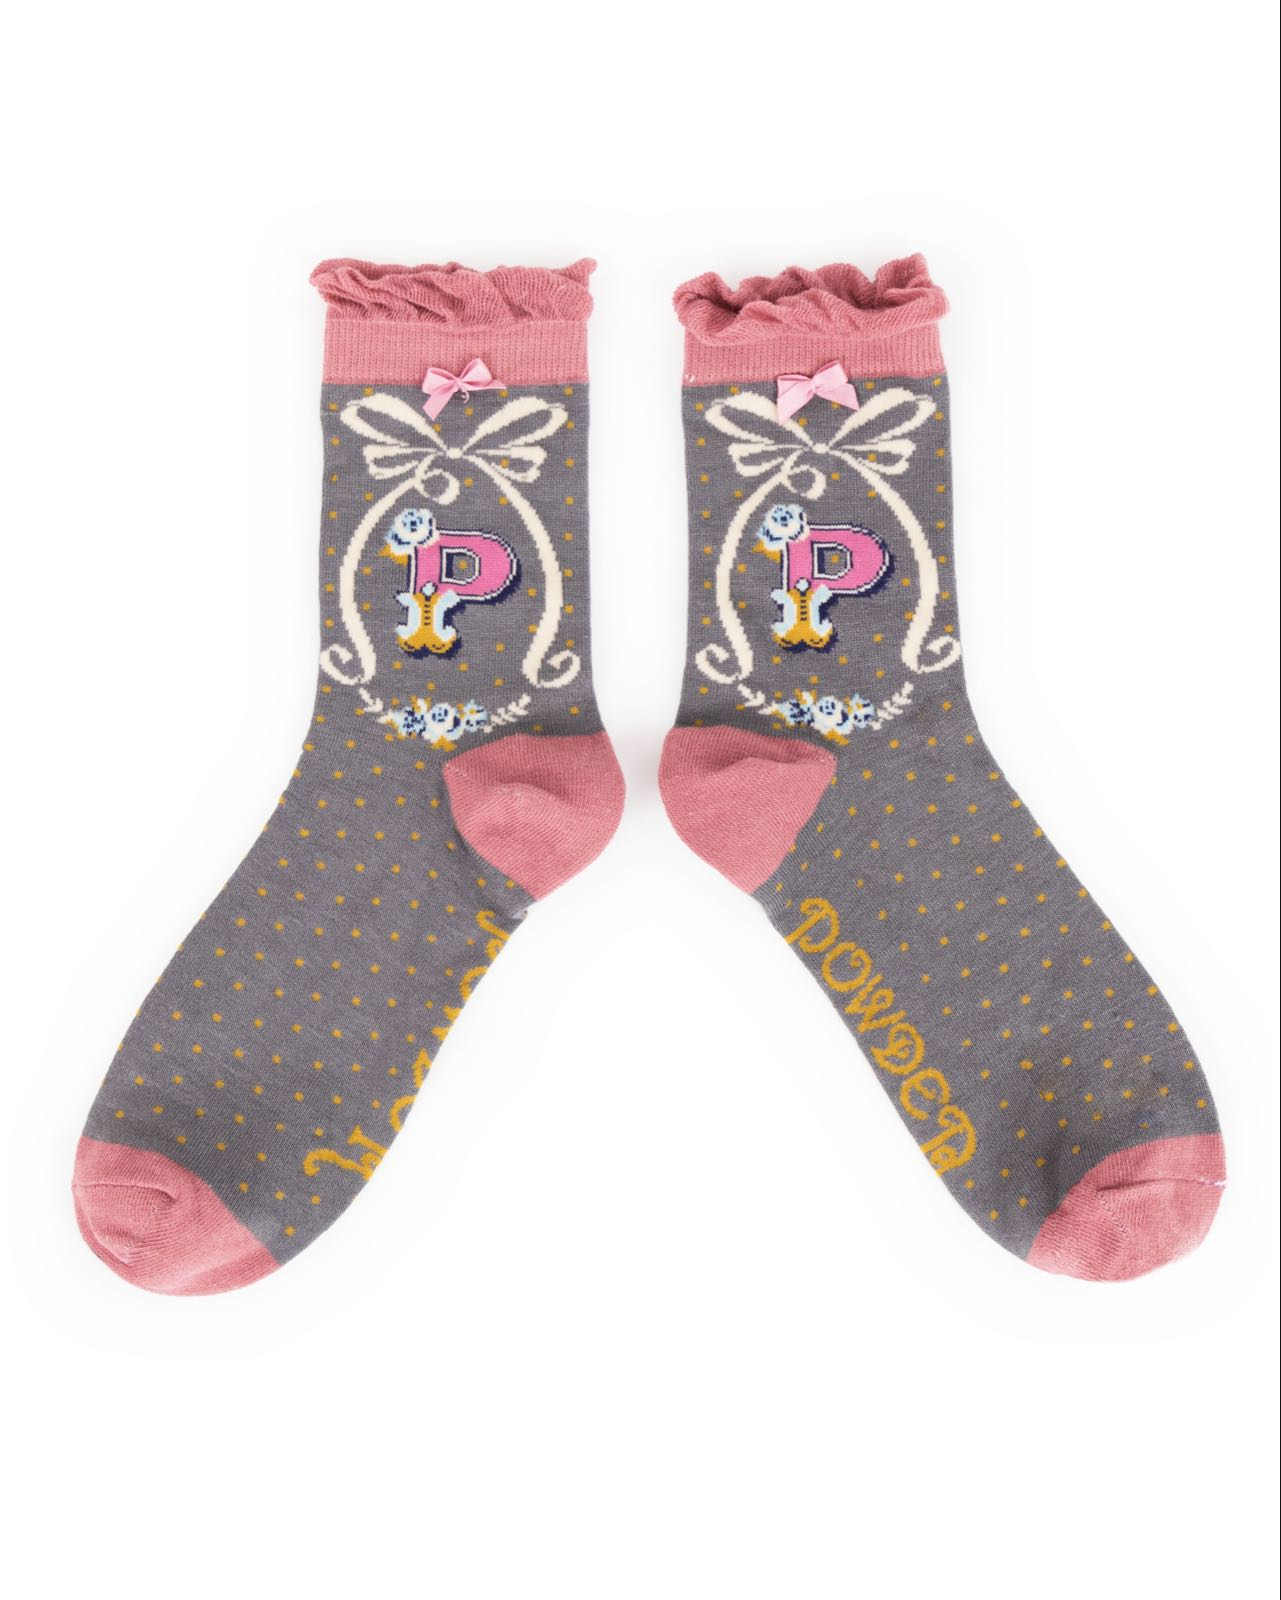 Powder Alphabet socks P (product may differ from item shown in the photo)